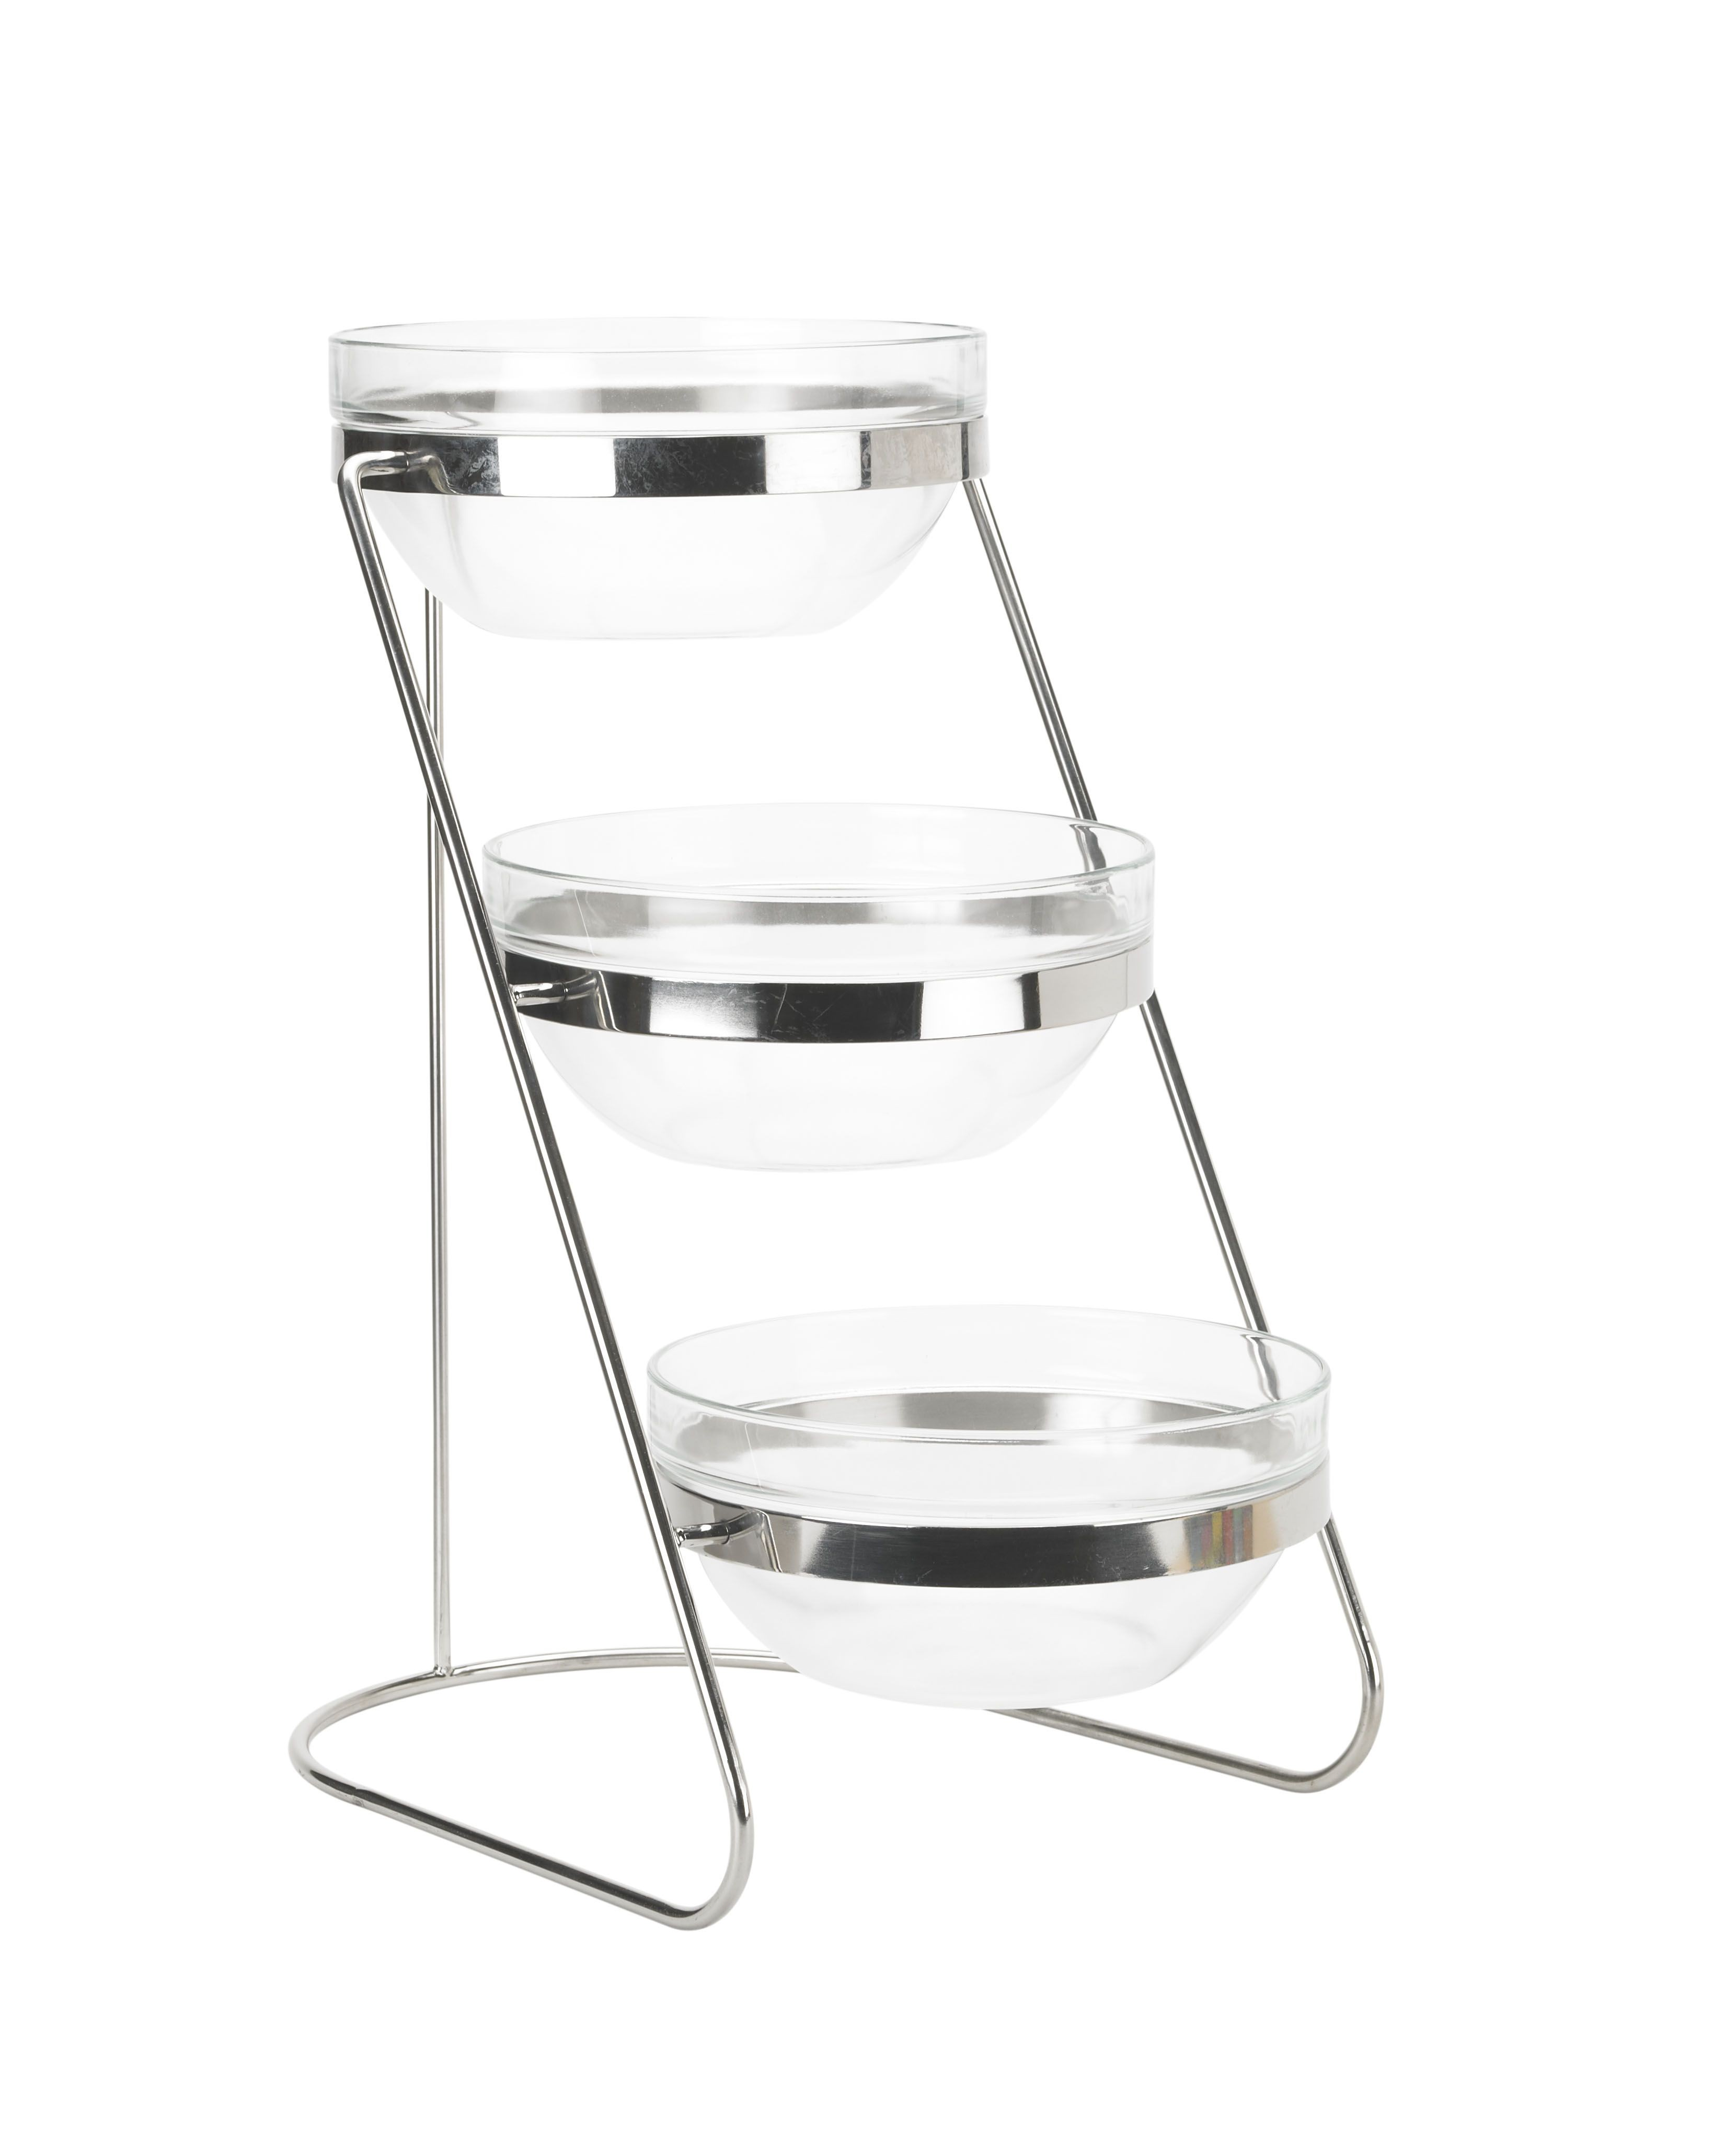 Winco tds-3 Tier Glass Bowl Display Set